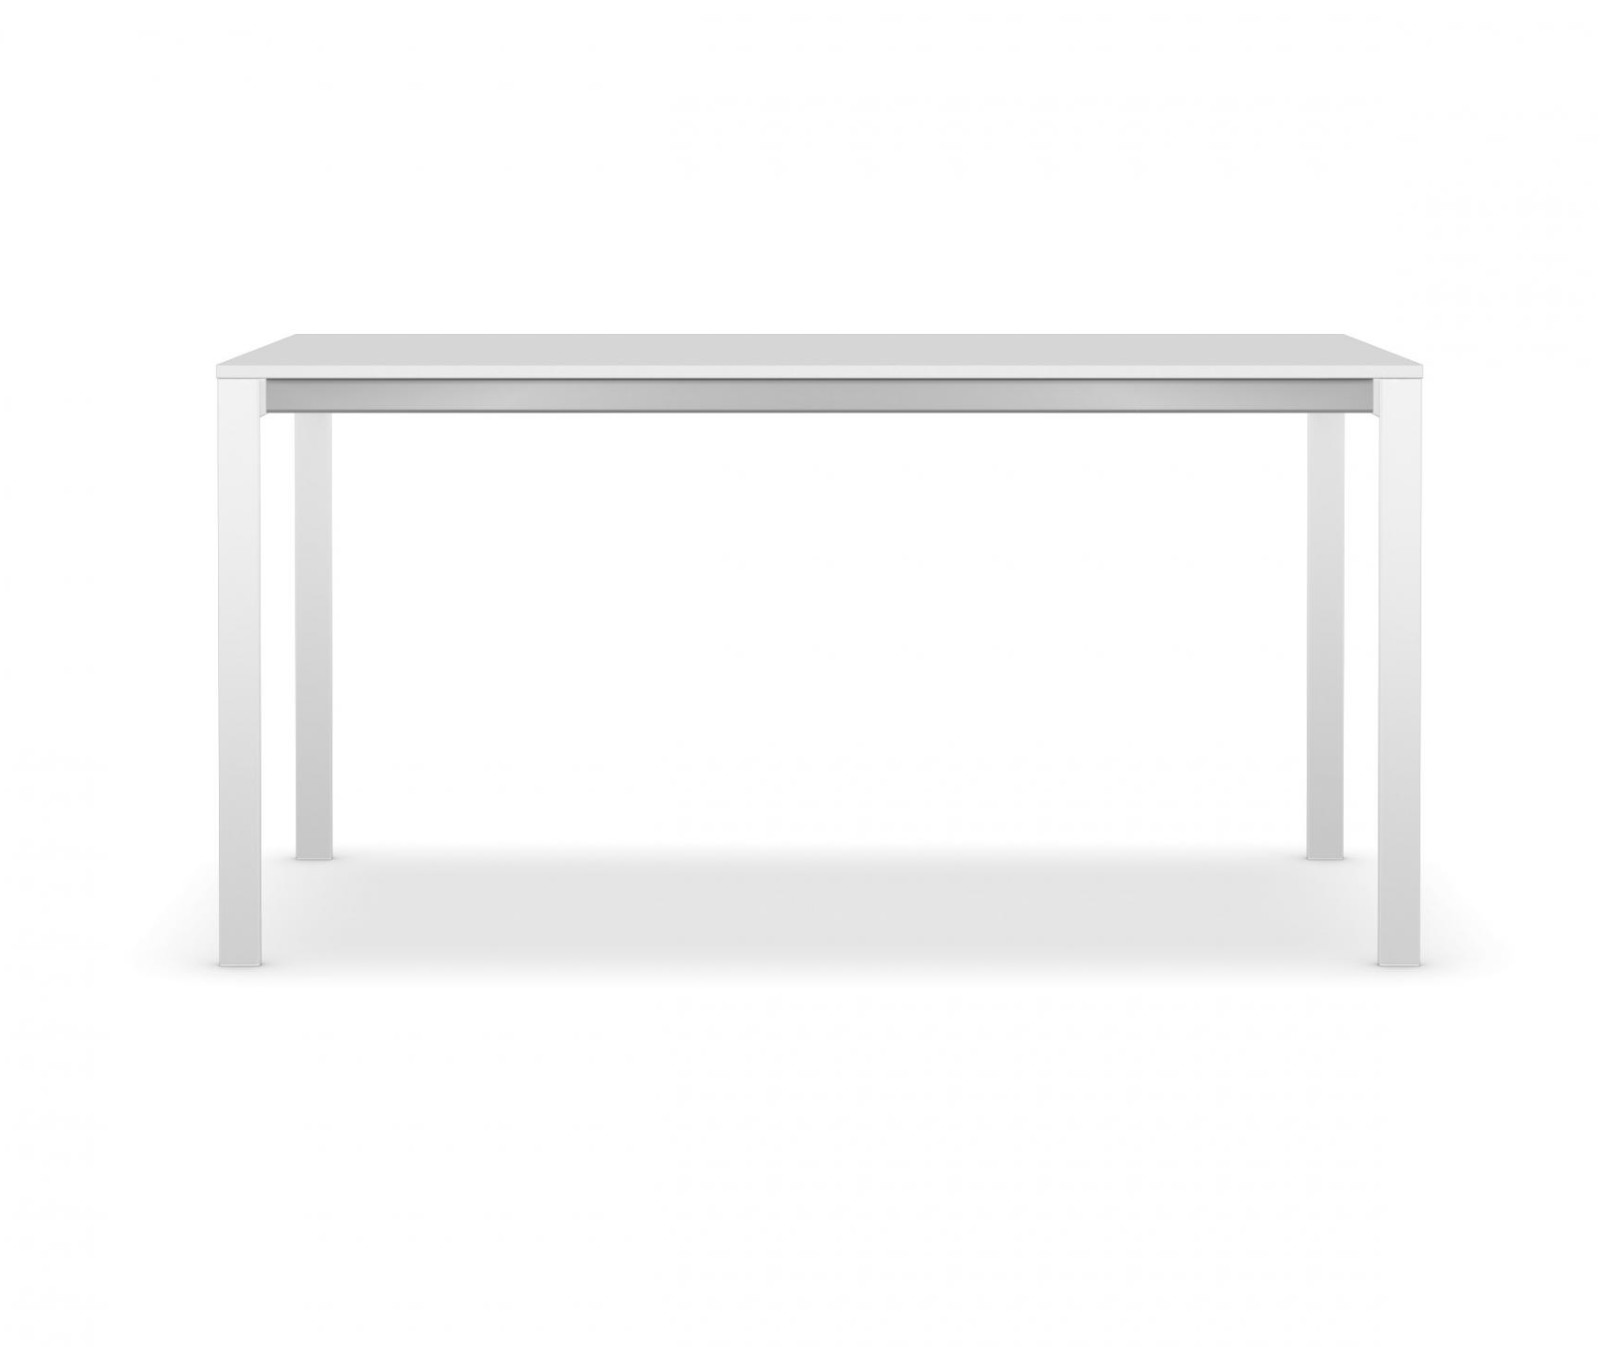 be-Easy Fixed Table White lacquered steel, Kos white 0032 Fenix-NTM®, L170 x D89cm